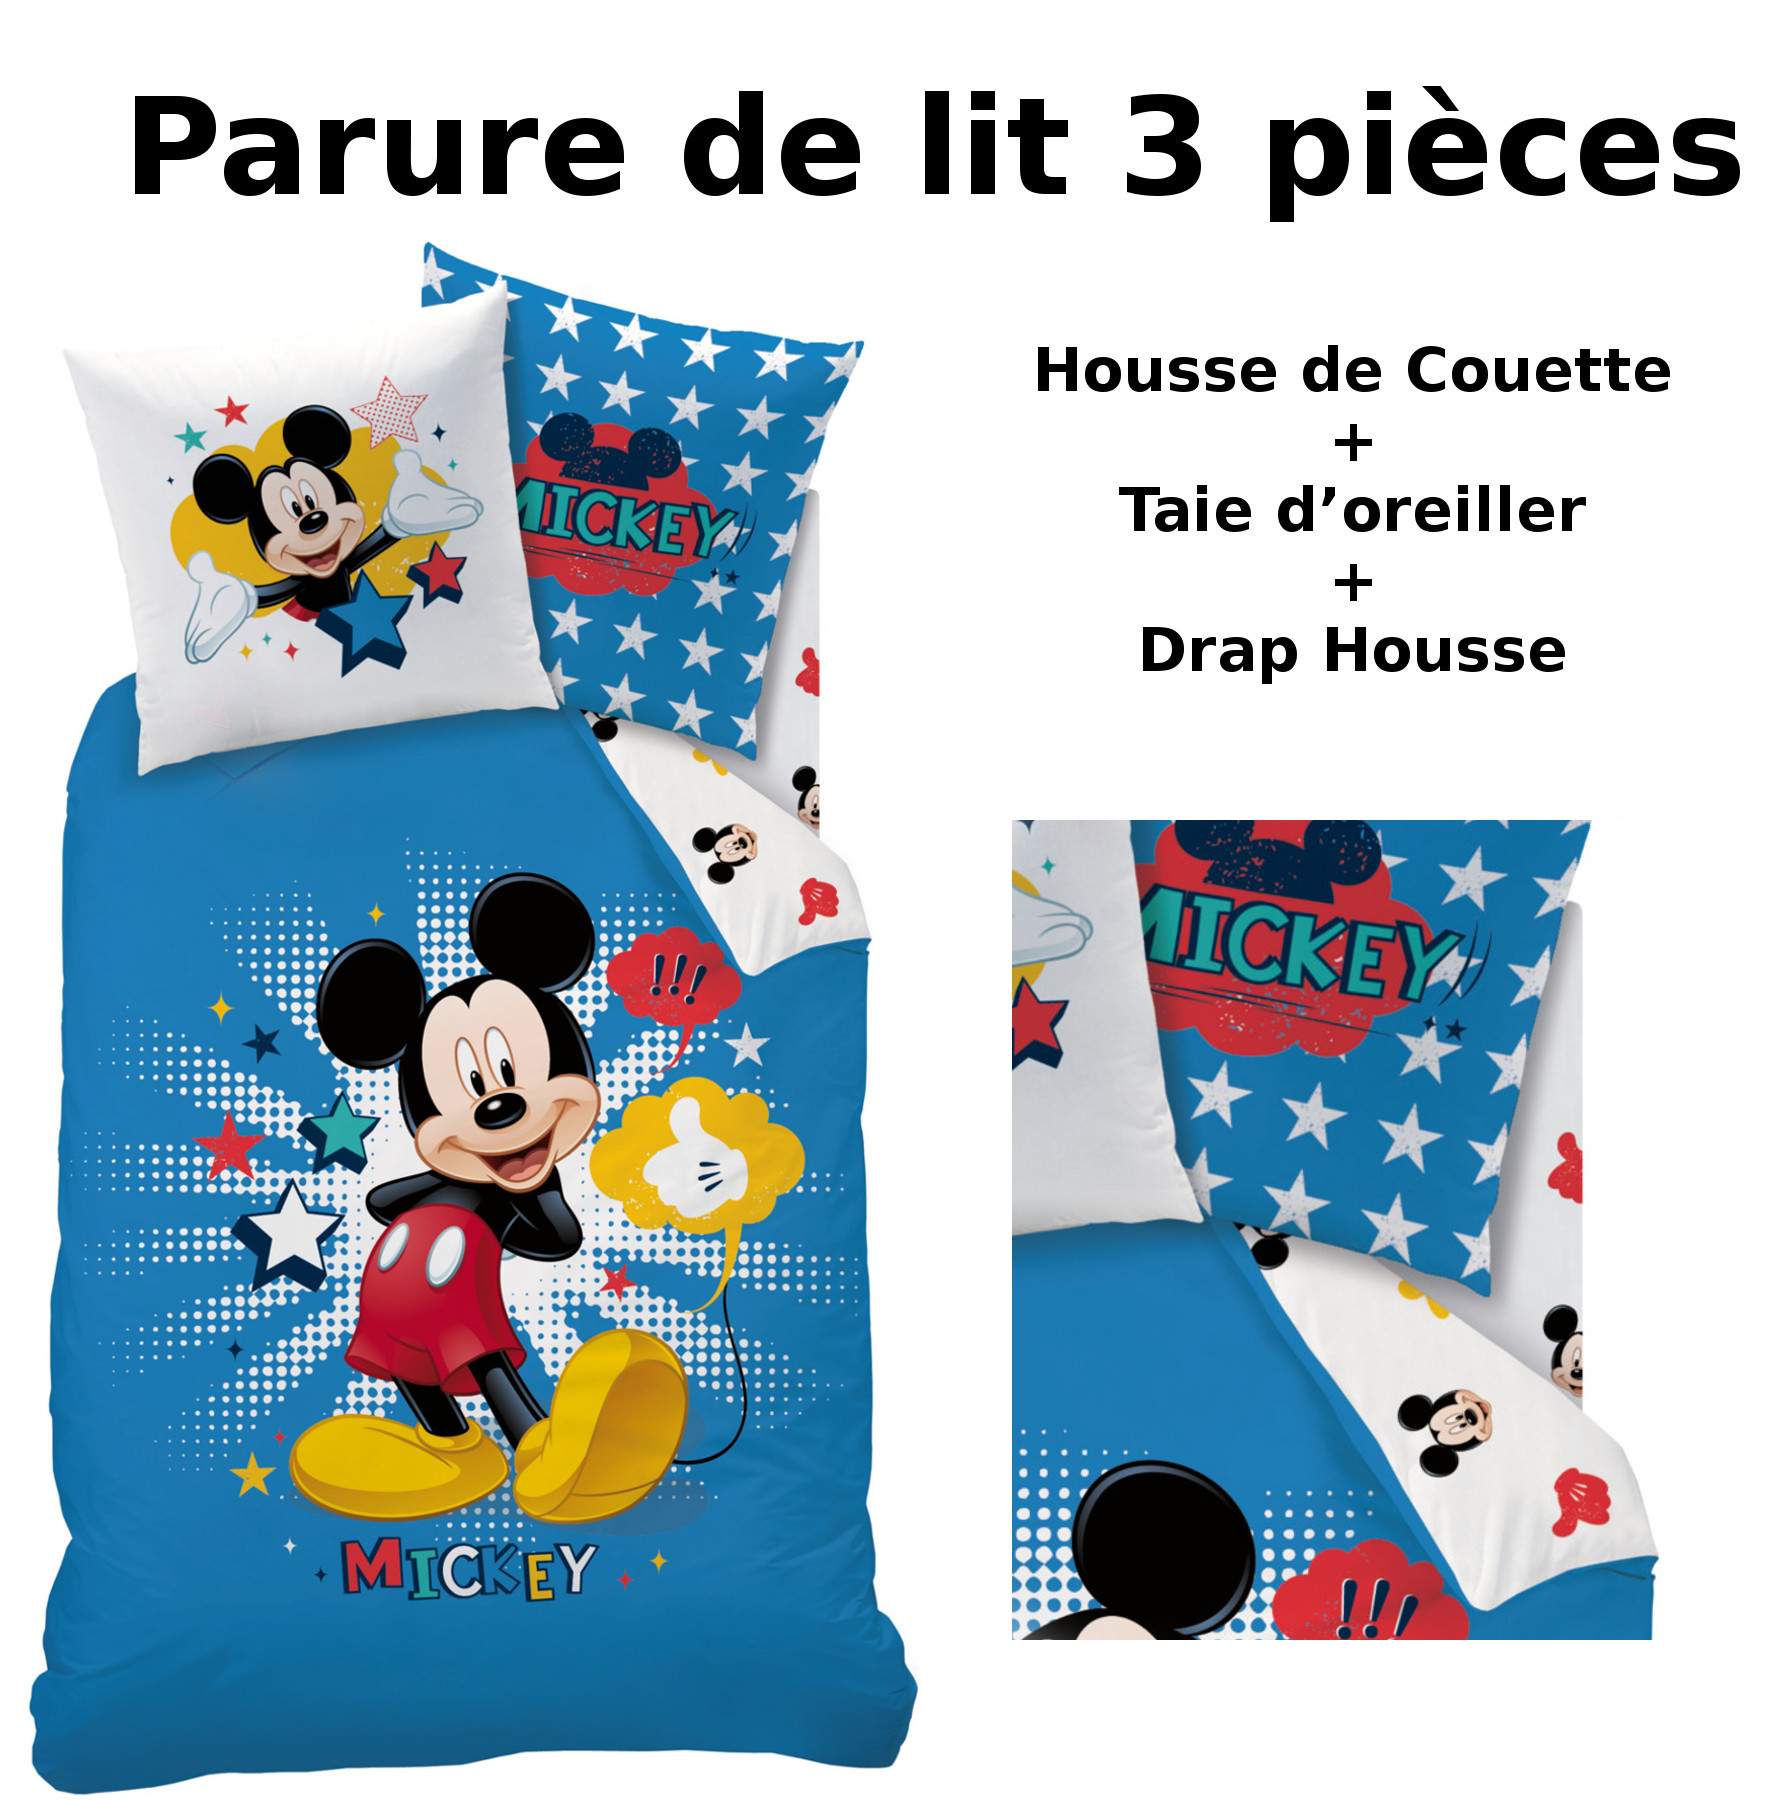 mickey parure de lit 3pcs housse de couette taie d 39 oreiller drap housse star. Black Bedroom Furniture Sets. Home Design Ideas